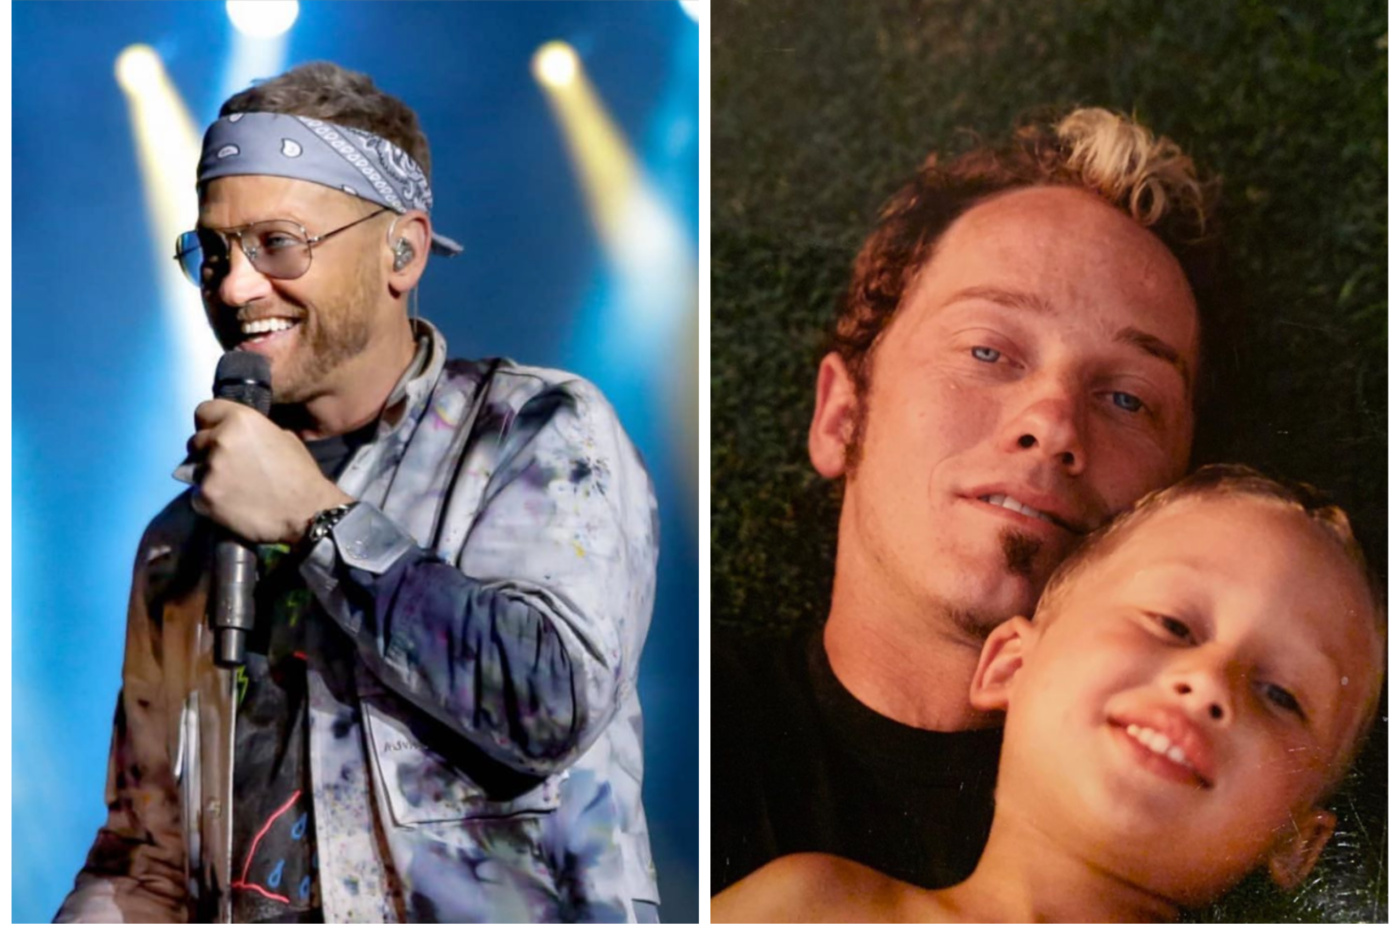 TobyMac in concert/TobyMac holding his son Truett around age 7